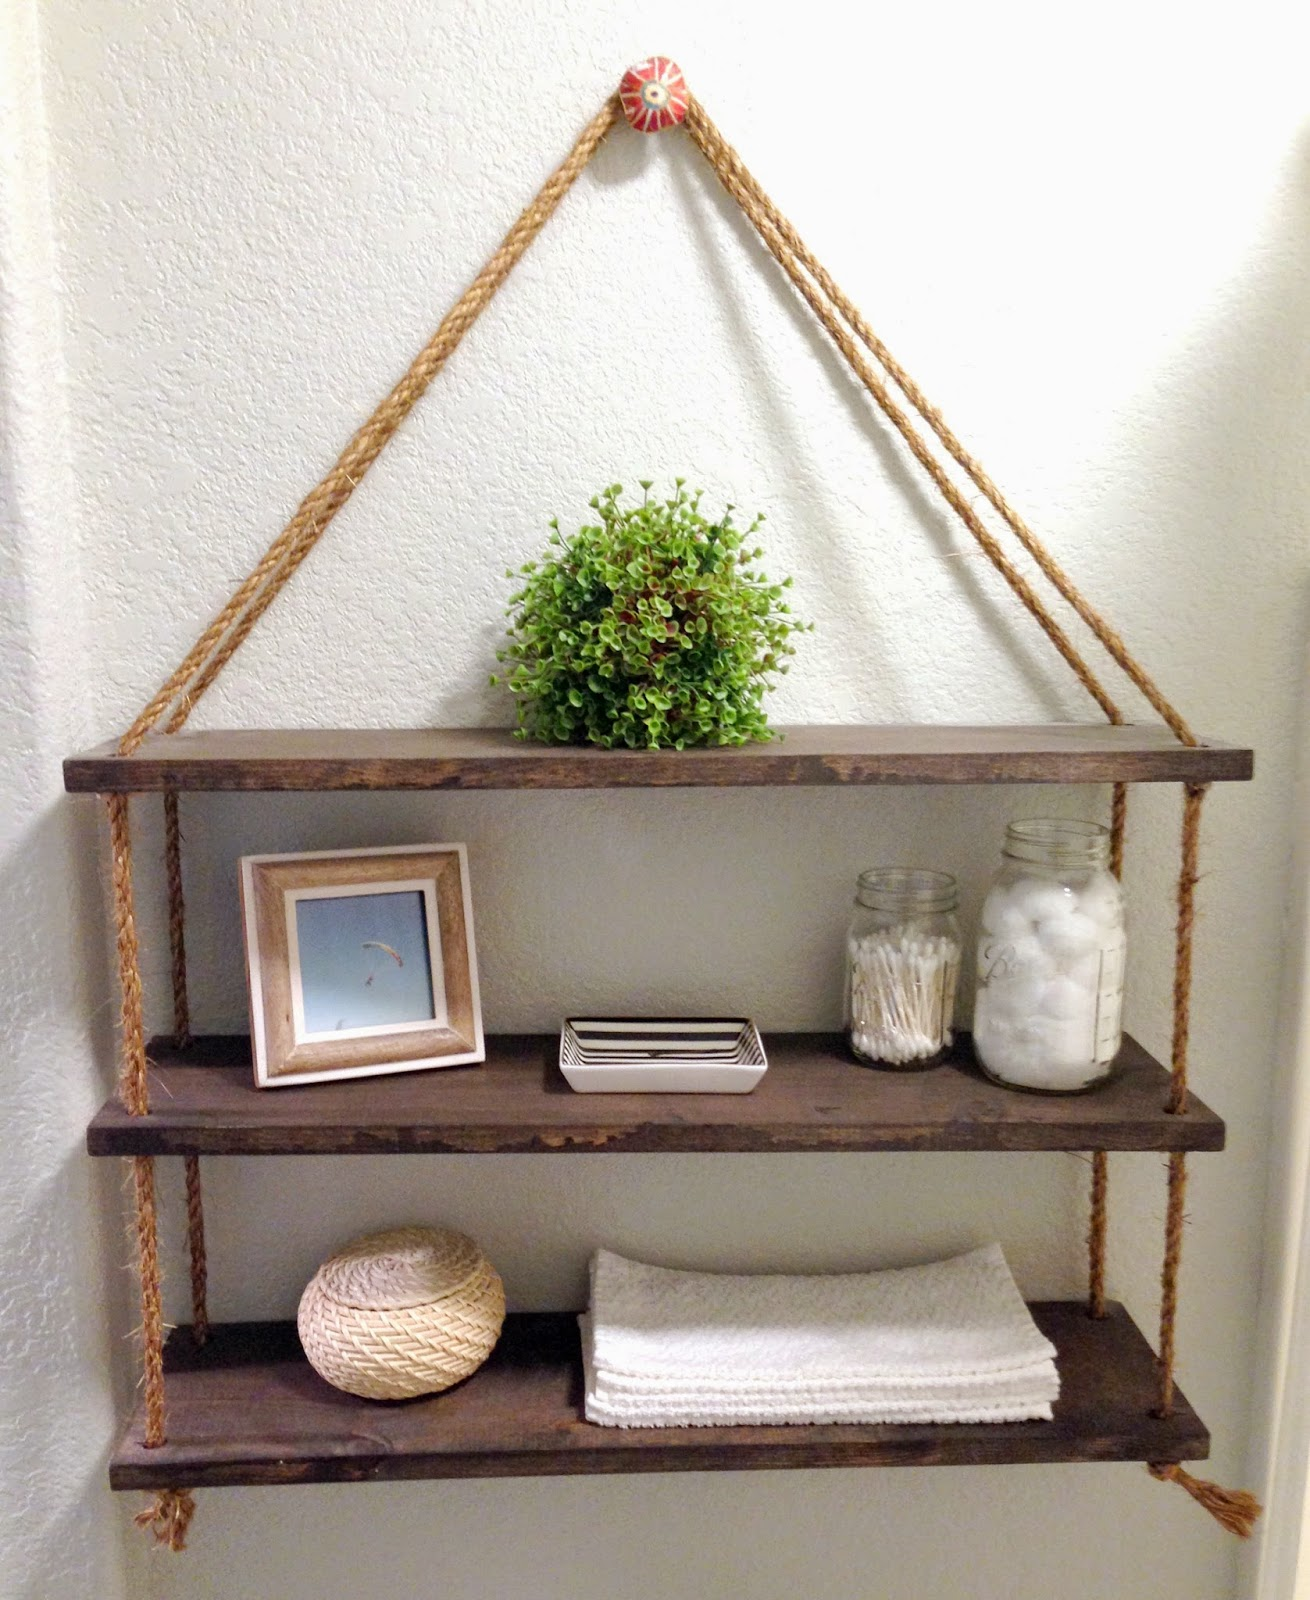 DIY Rope Shelf